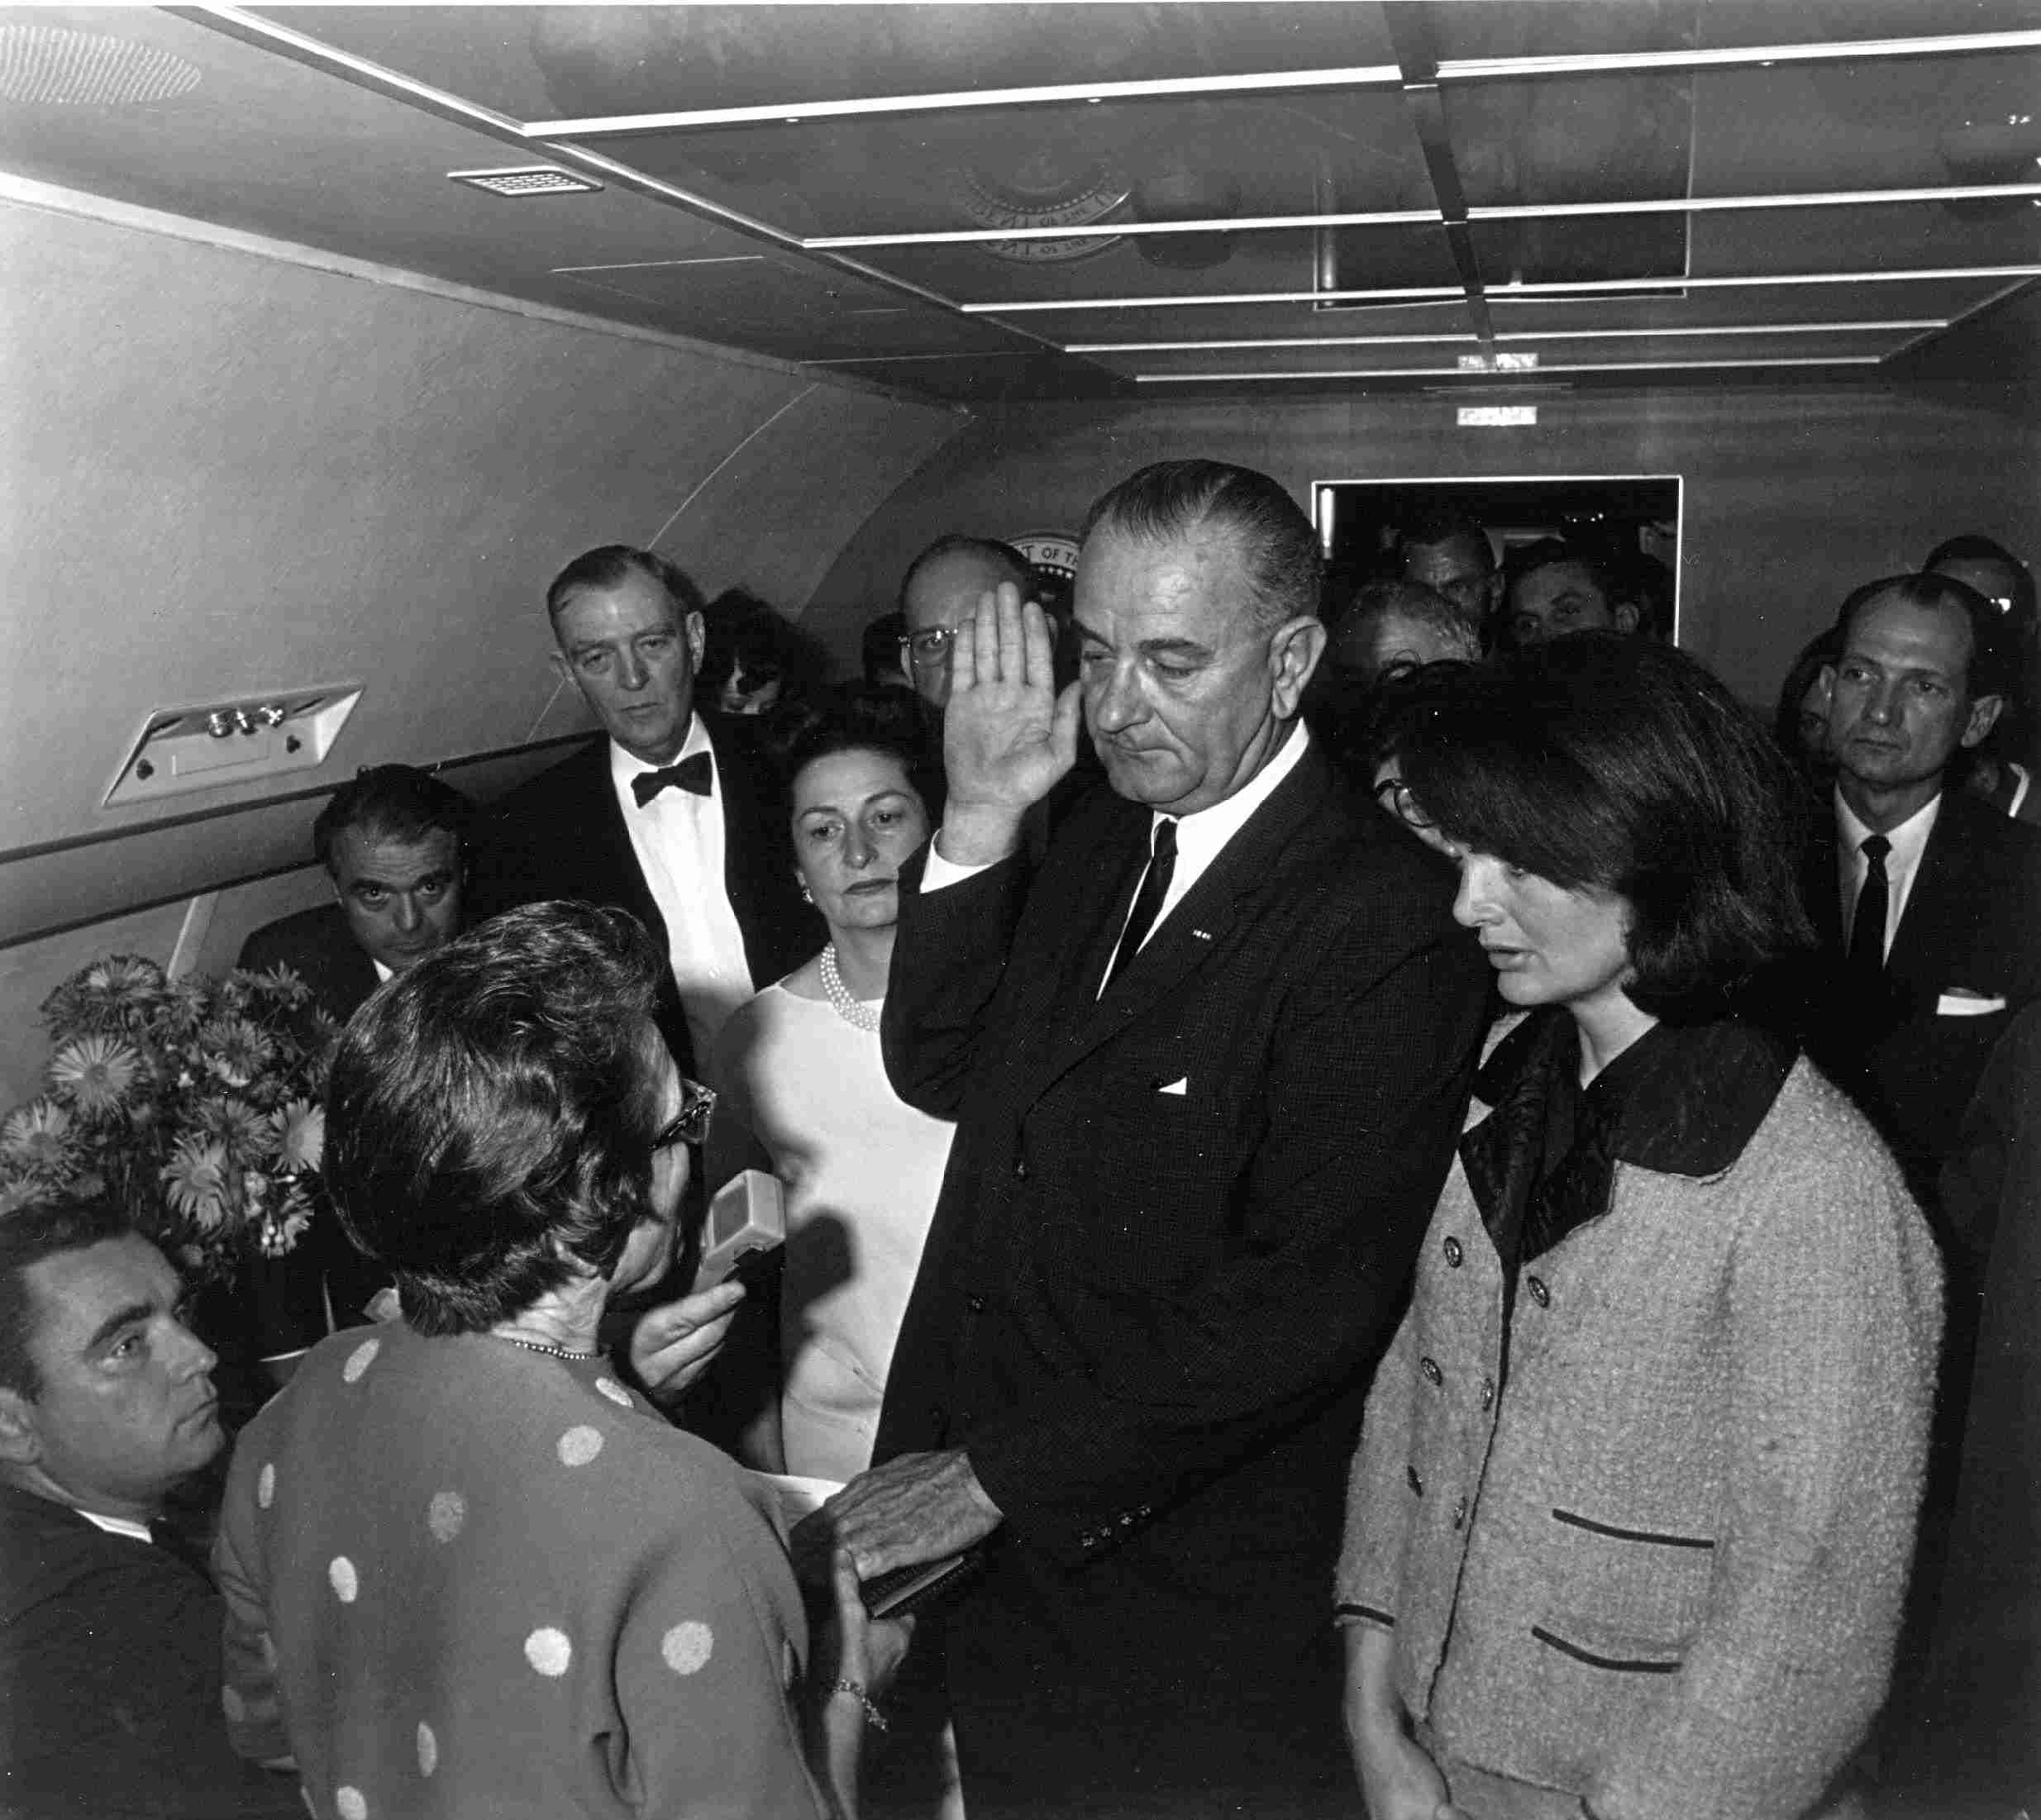 Lyndon B. Johnson takes the oath of office as President of the United States, after the assassination of President John F. Kennedy November 22, 1963.